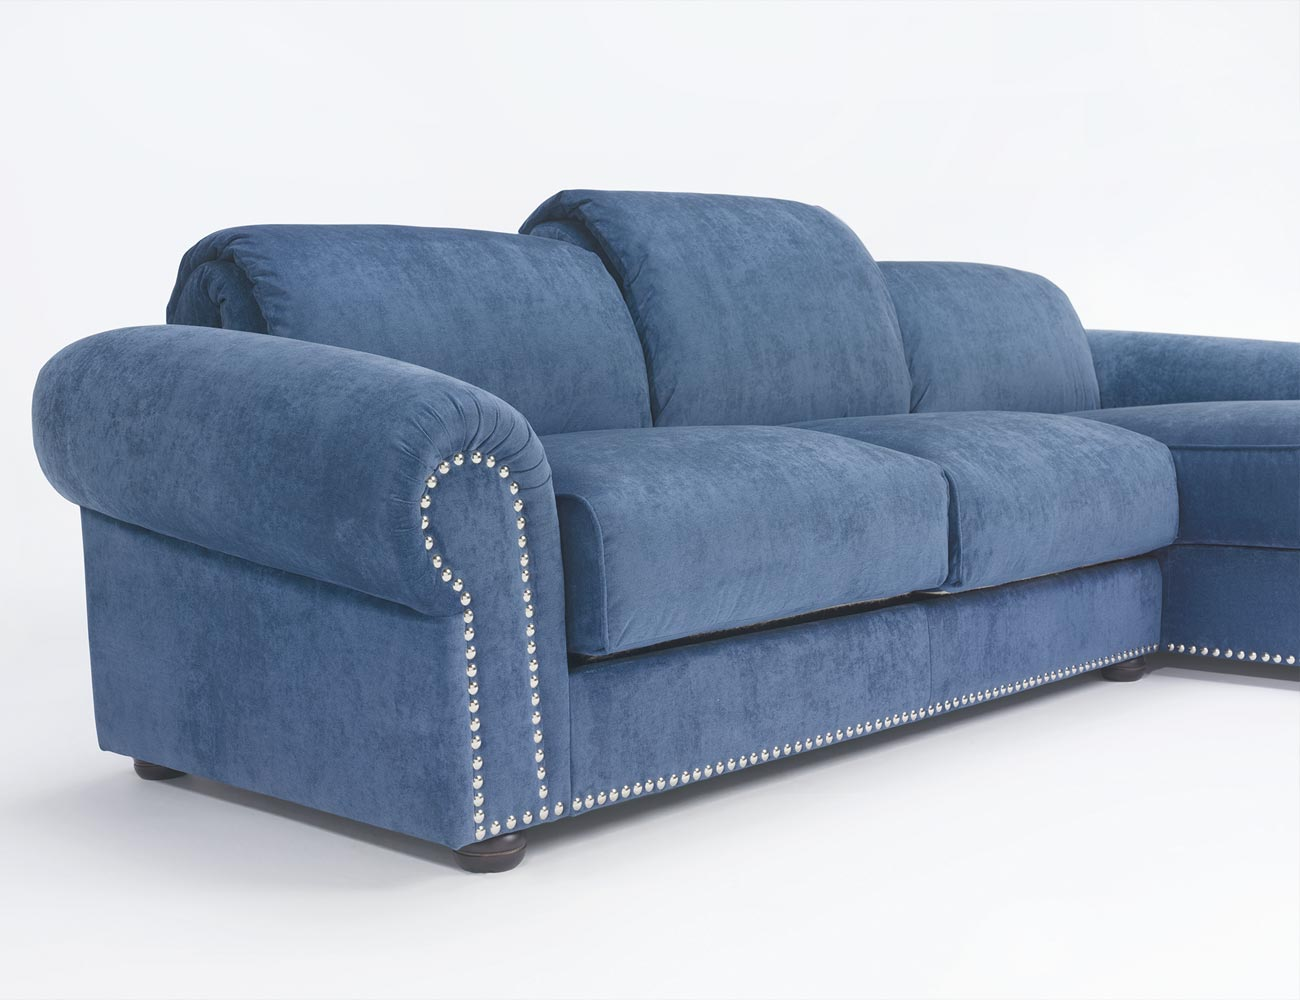 Sofa chaiselongue gran lujo decorativo azul 124